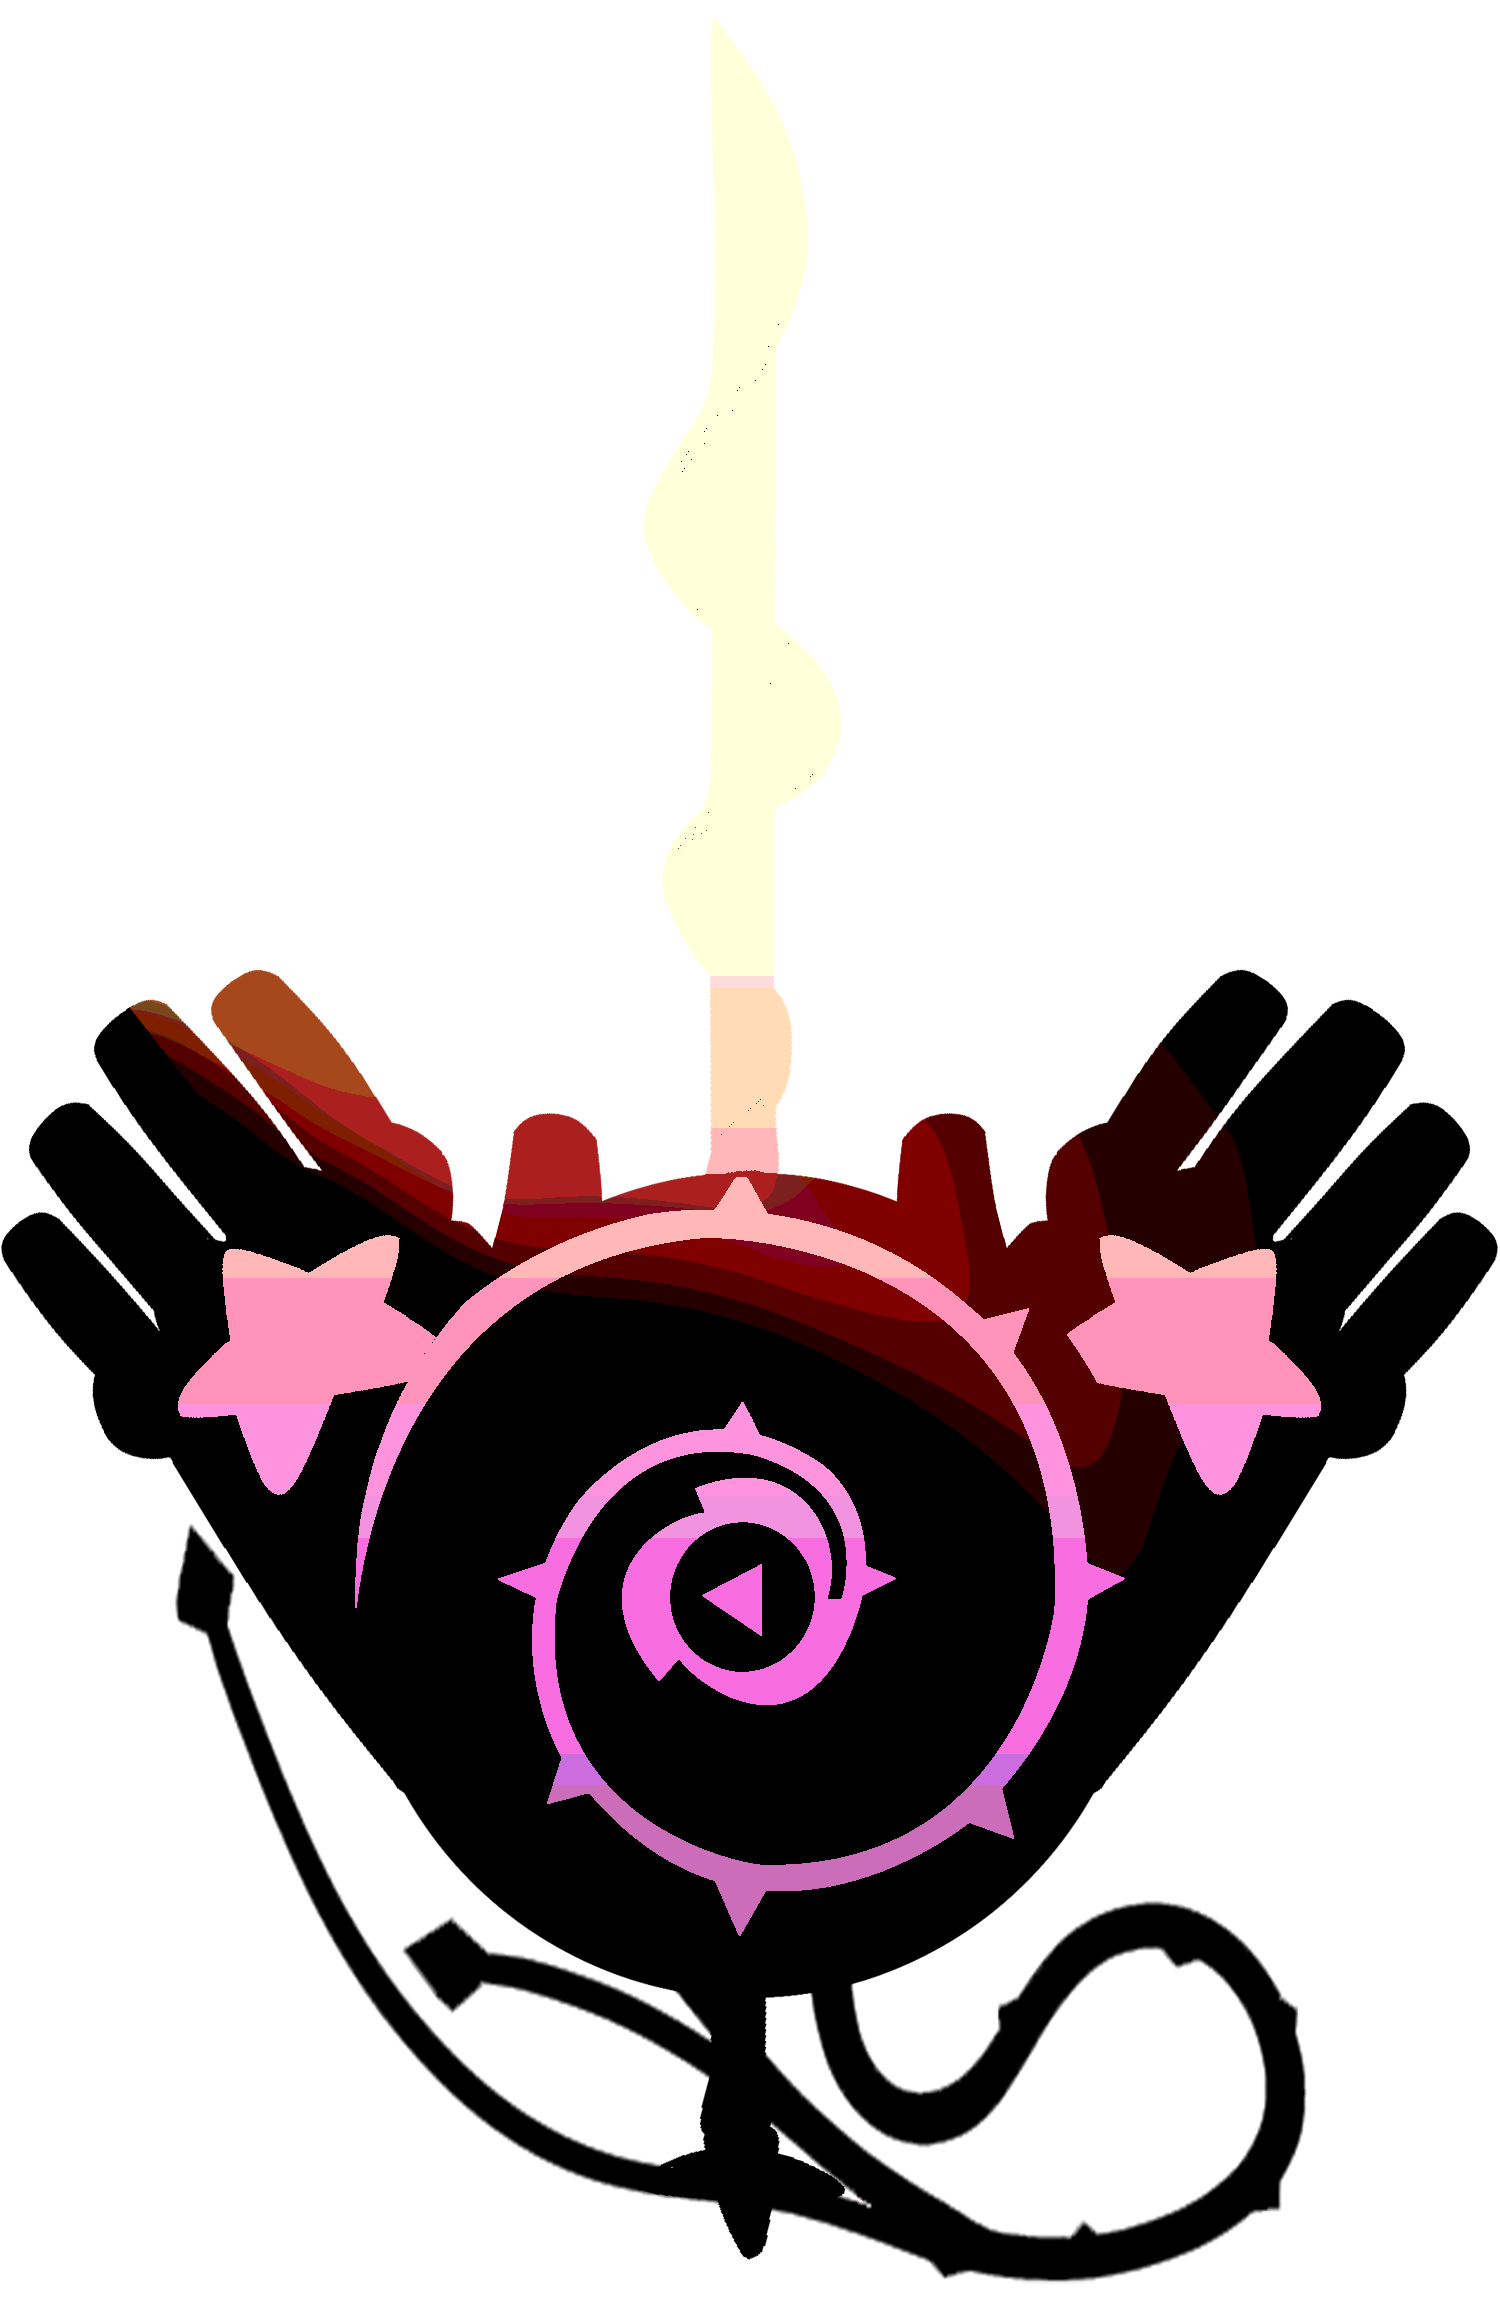 Minimalist transparent steven universe. The crystal weapons by